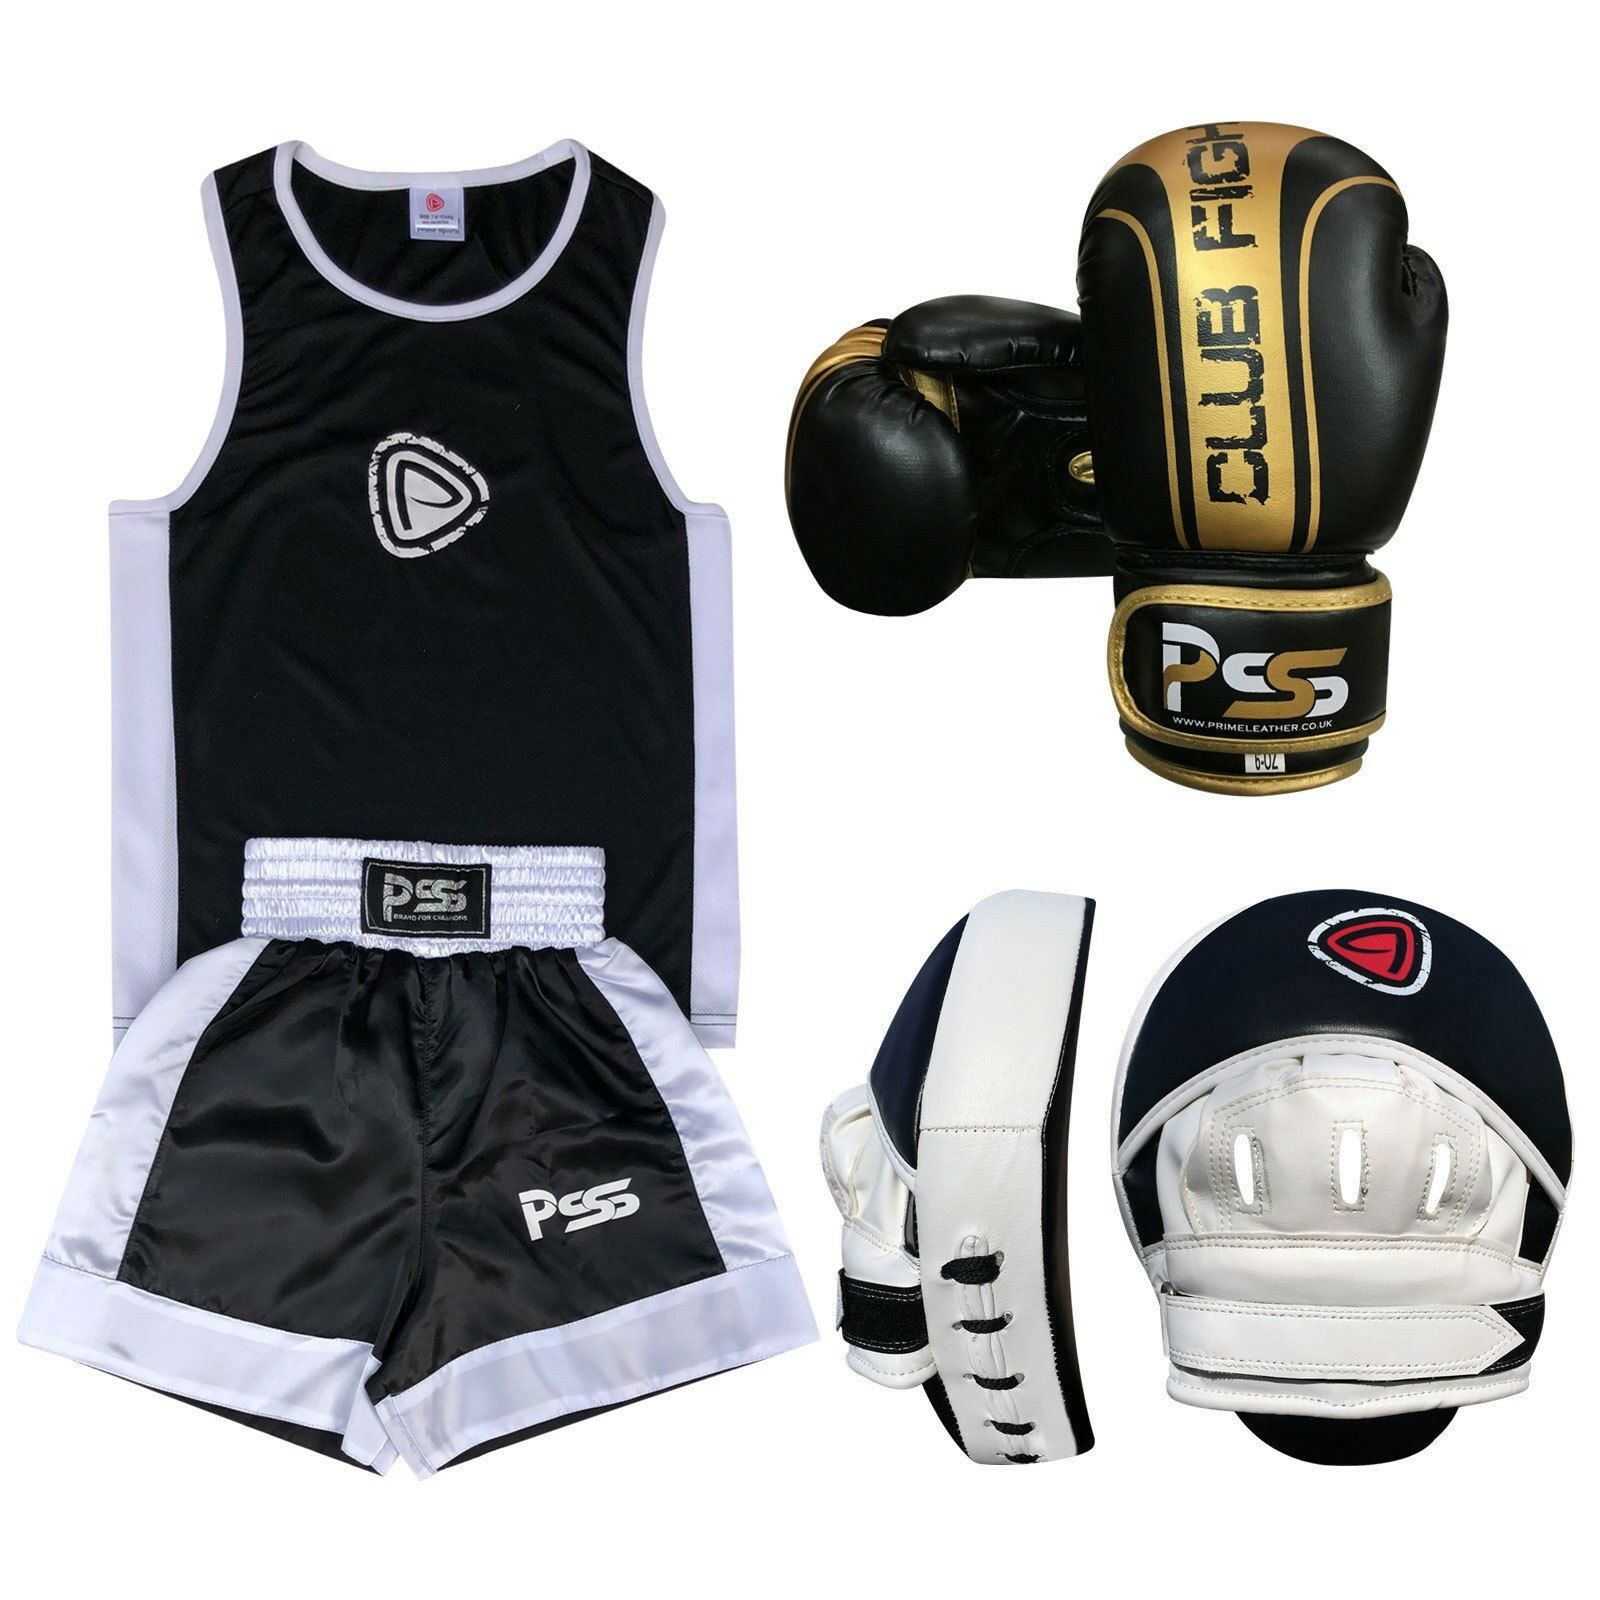 Kid Boxing Set of 3 3 3 Pcs Boxing Uniform Boxing Glove 1006 Focus Pad 1102 (SET-18) f12899